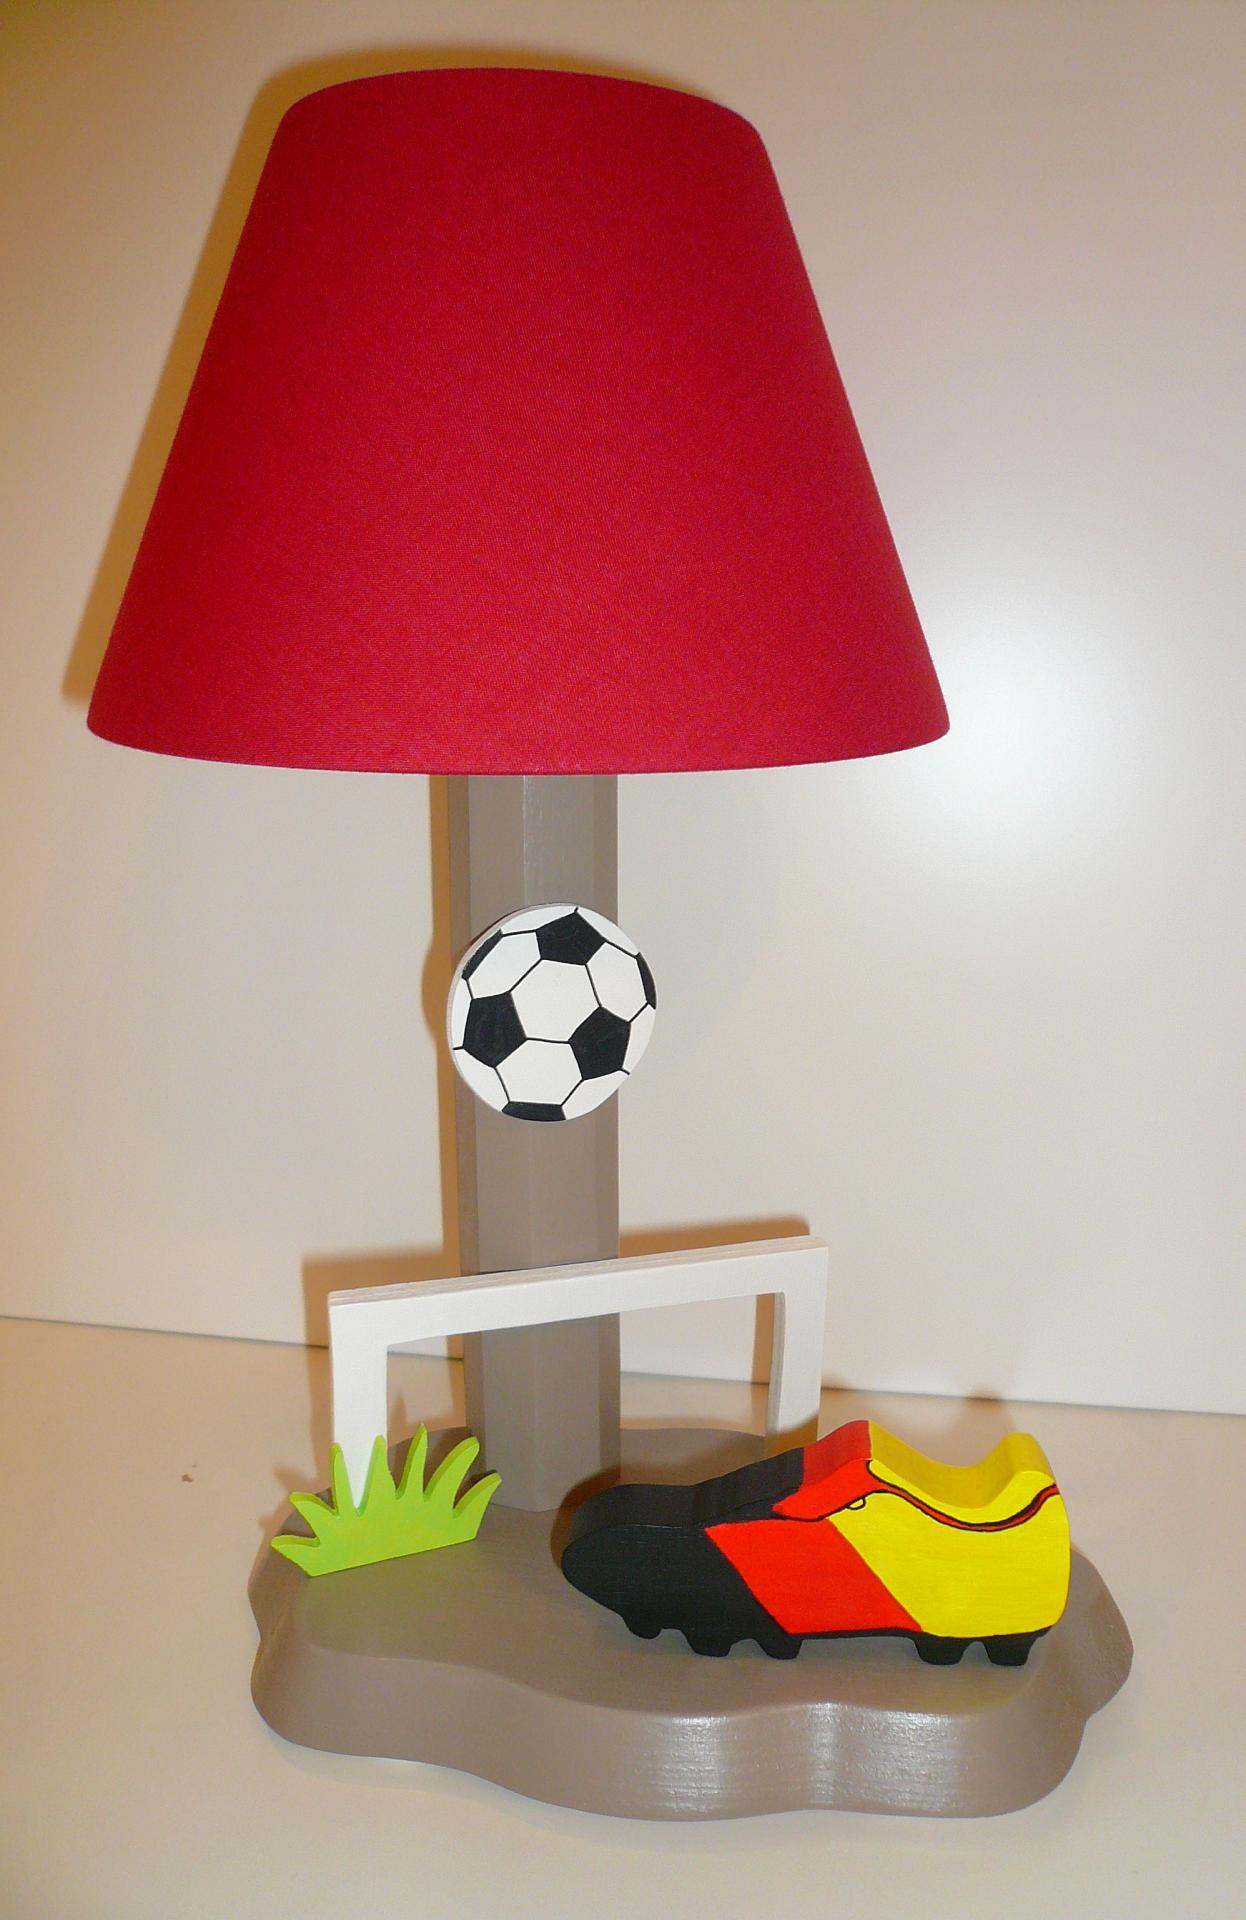 lampe fussball. Black Bedroom Furniture Sets. Home Design Ideas